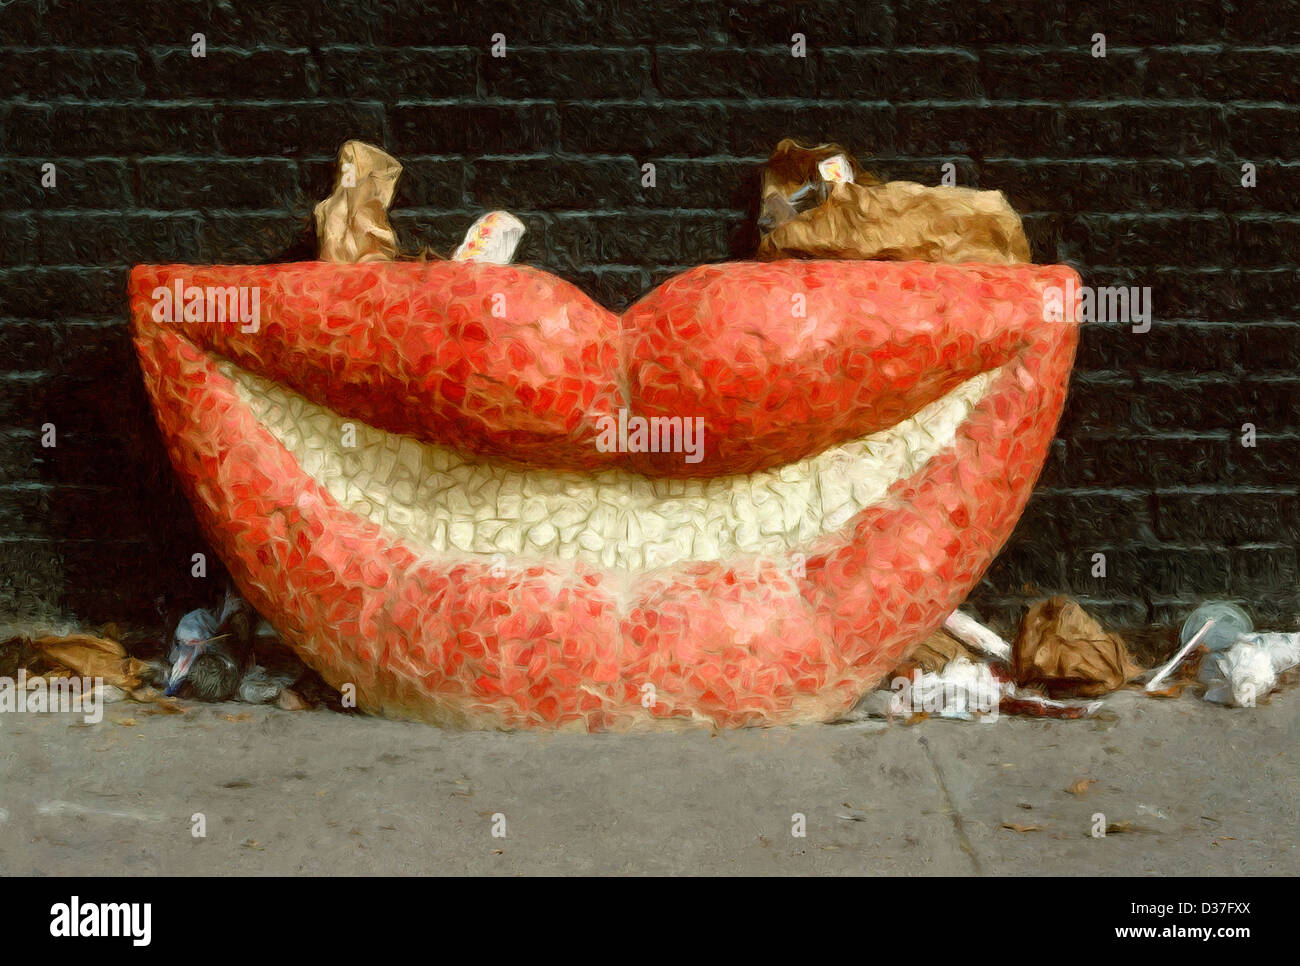 Realistic Painting Of Lips And Trash Hanging Out In An Alley Stock Photo Alamy